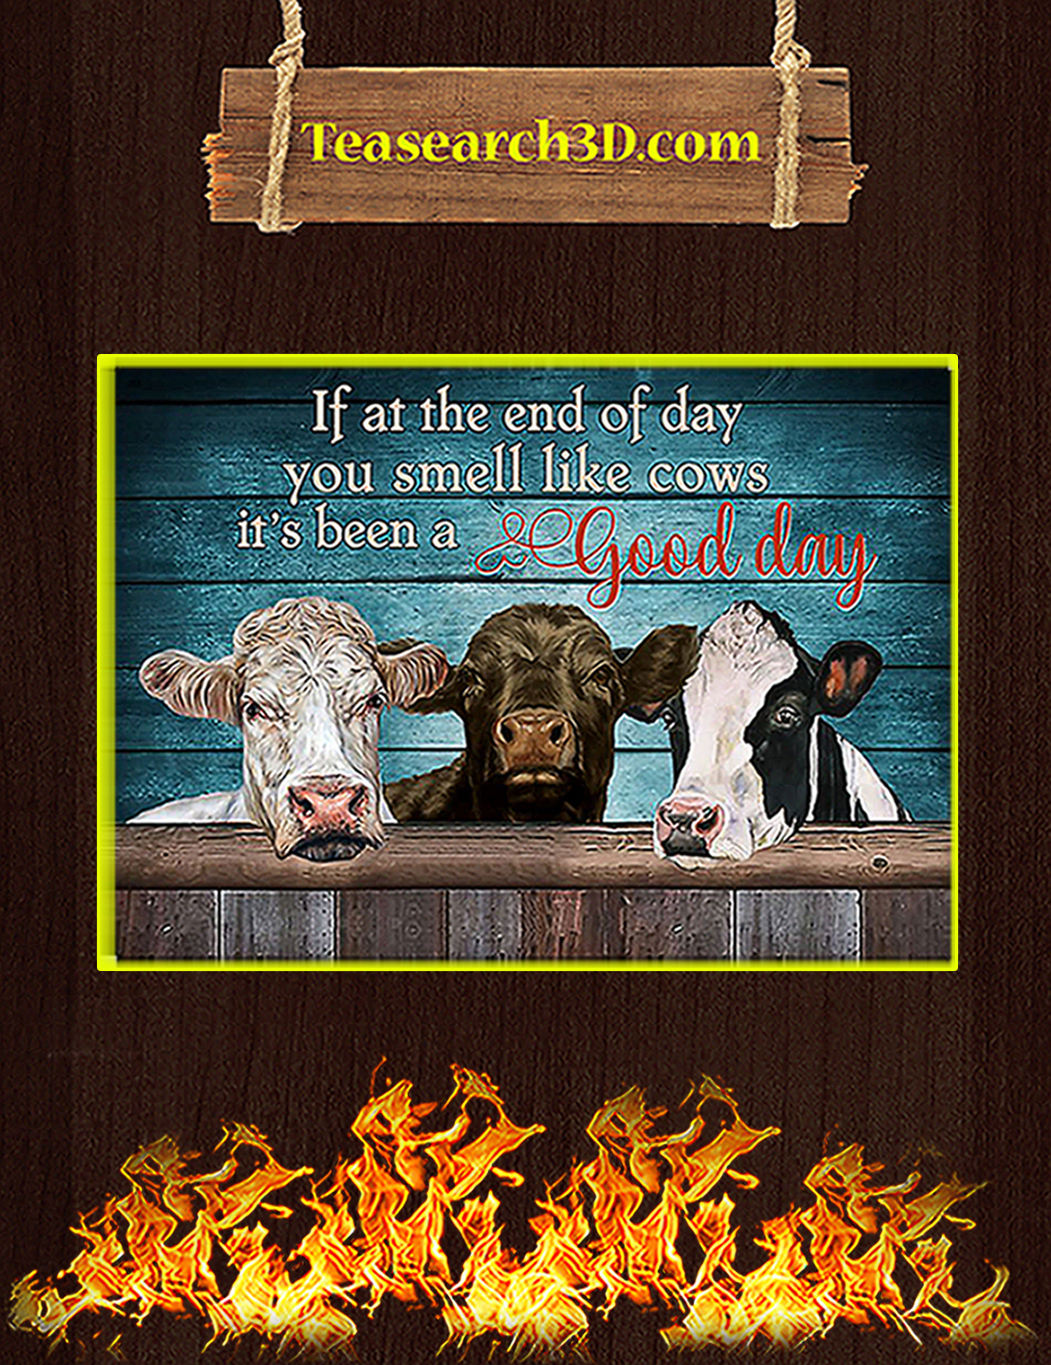 If in the end of day you smell like cows it's been a good day poster A1